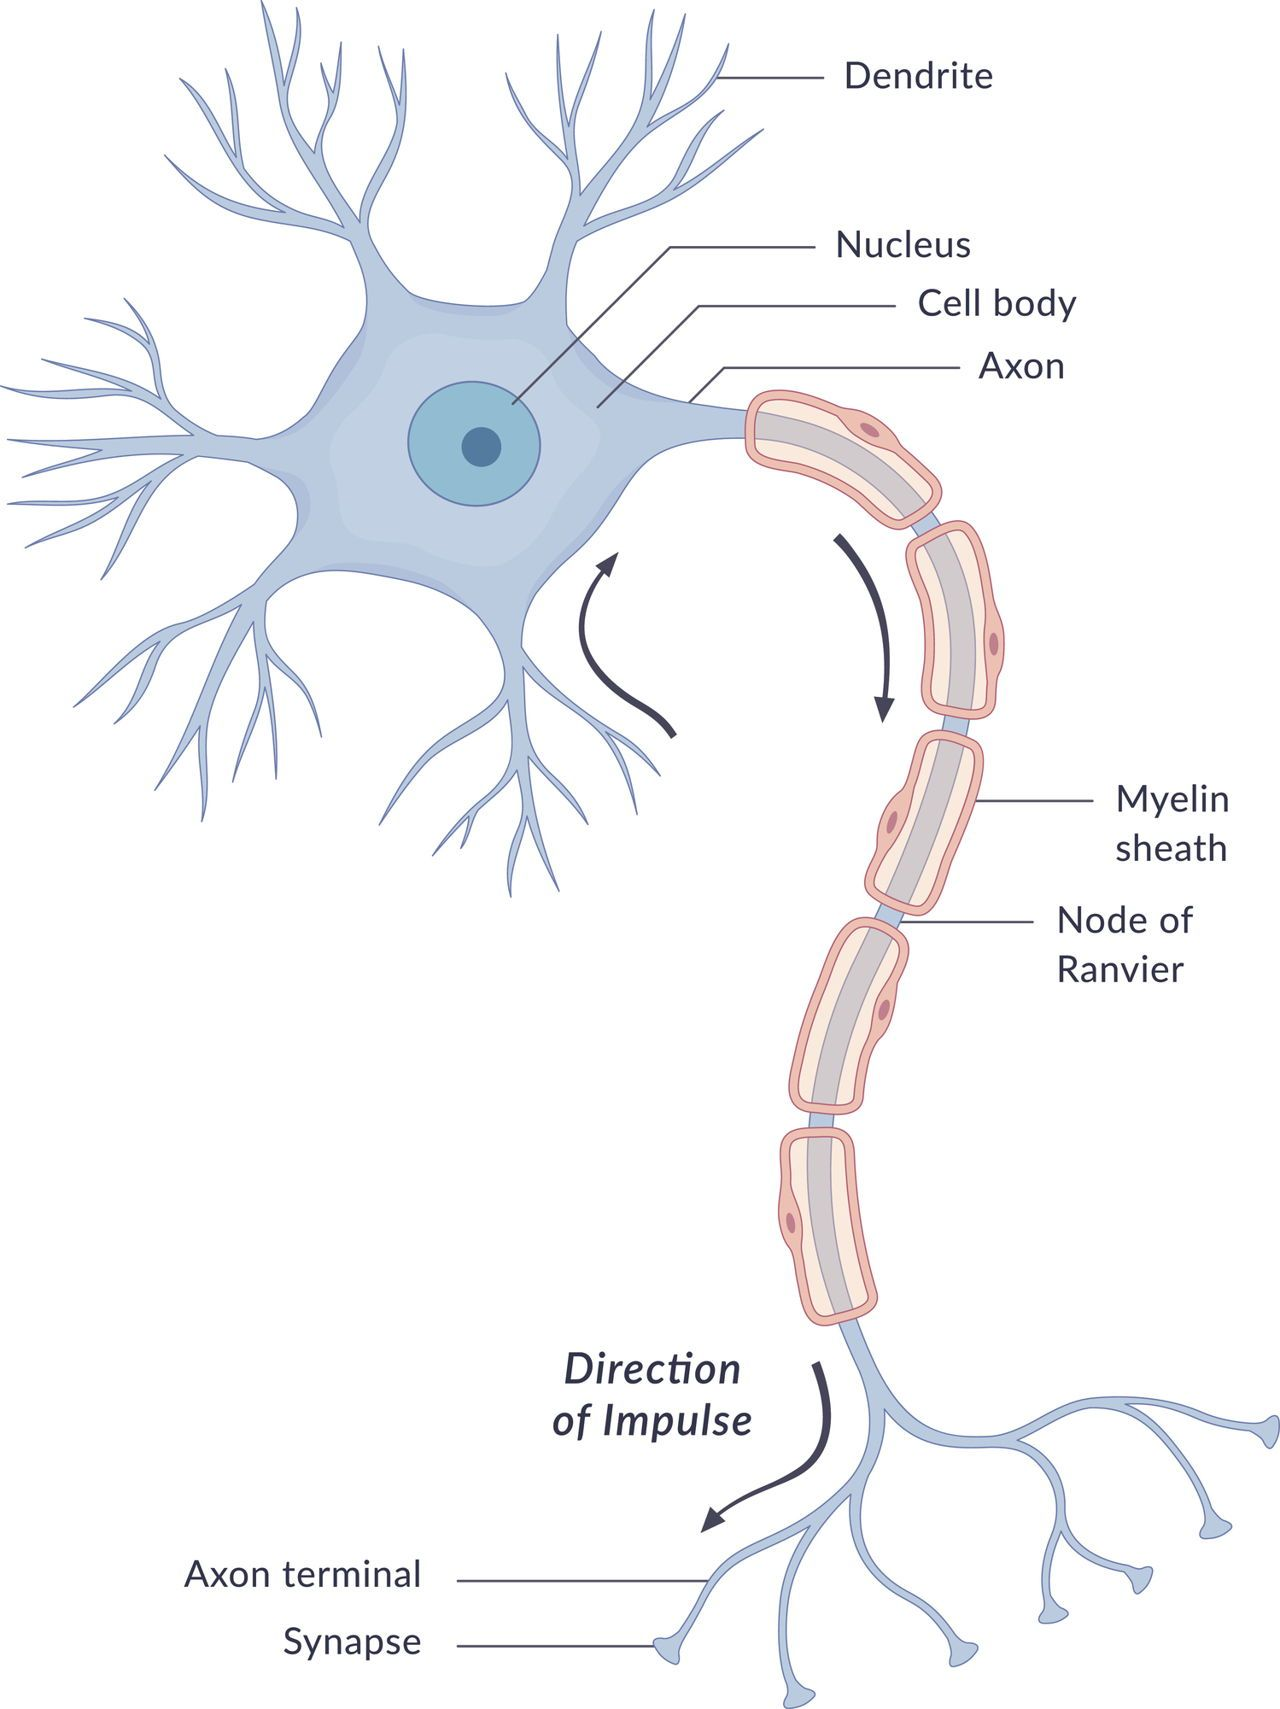 neuron diagram nervous system neuron diagram nervous system nervous system diagram full neorns [ 1280 x 1709 Pixel ]